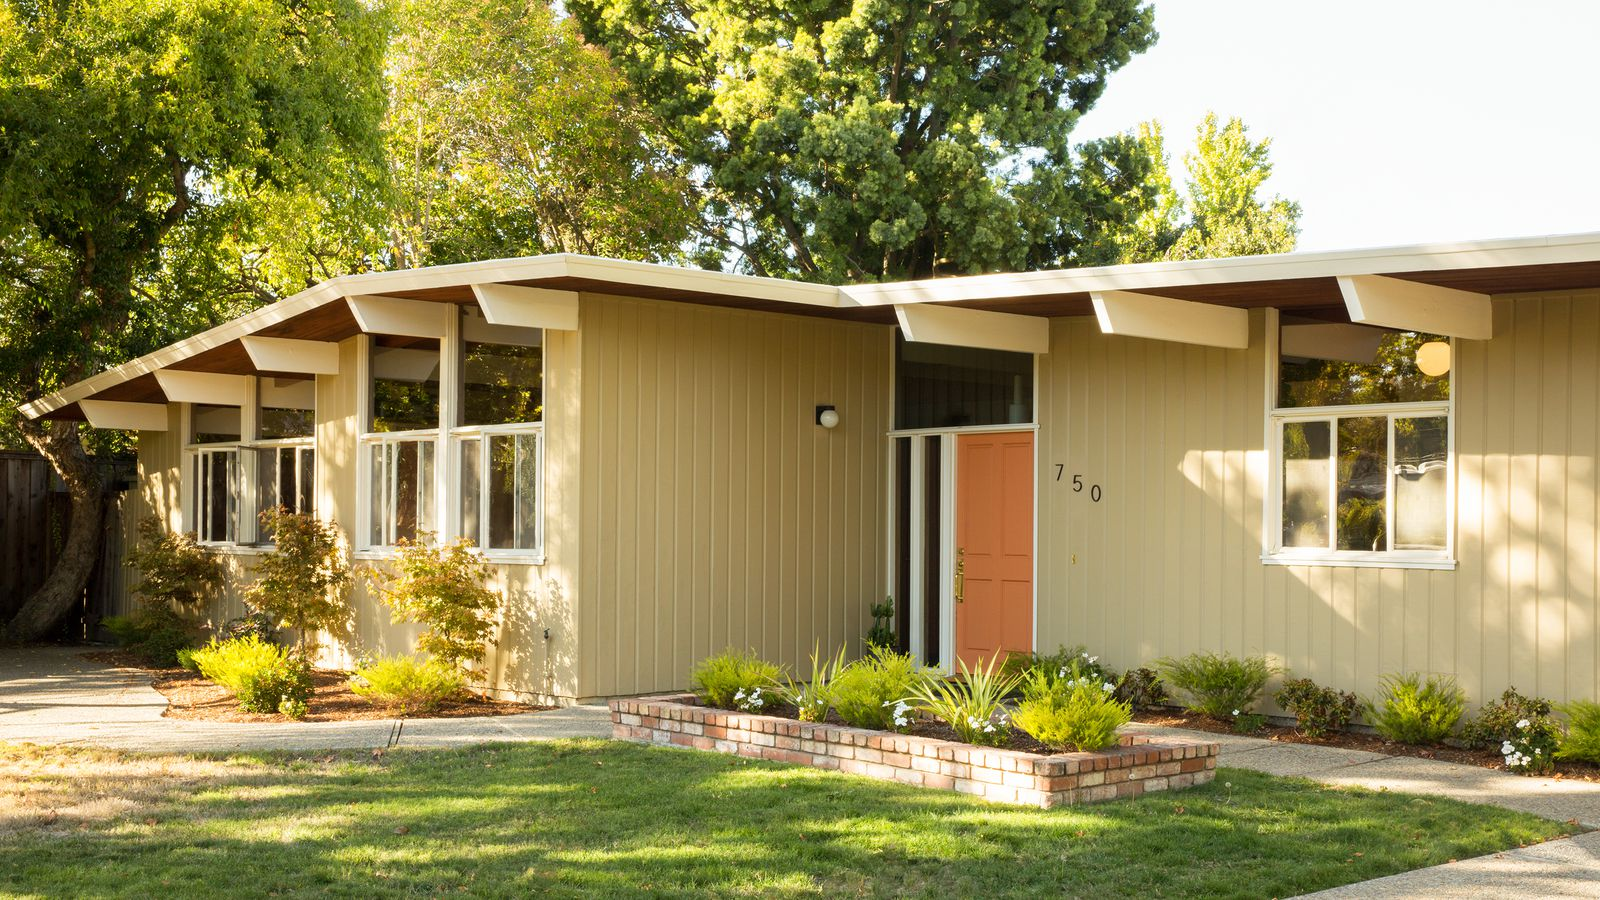 Midcentury Modern Homes + Interiors, a new Facebook group